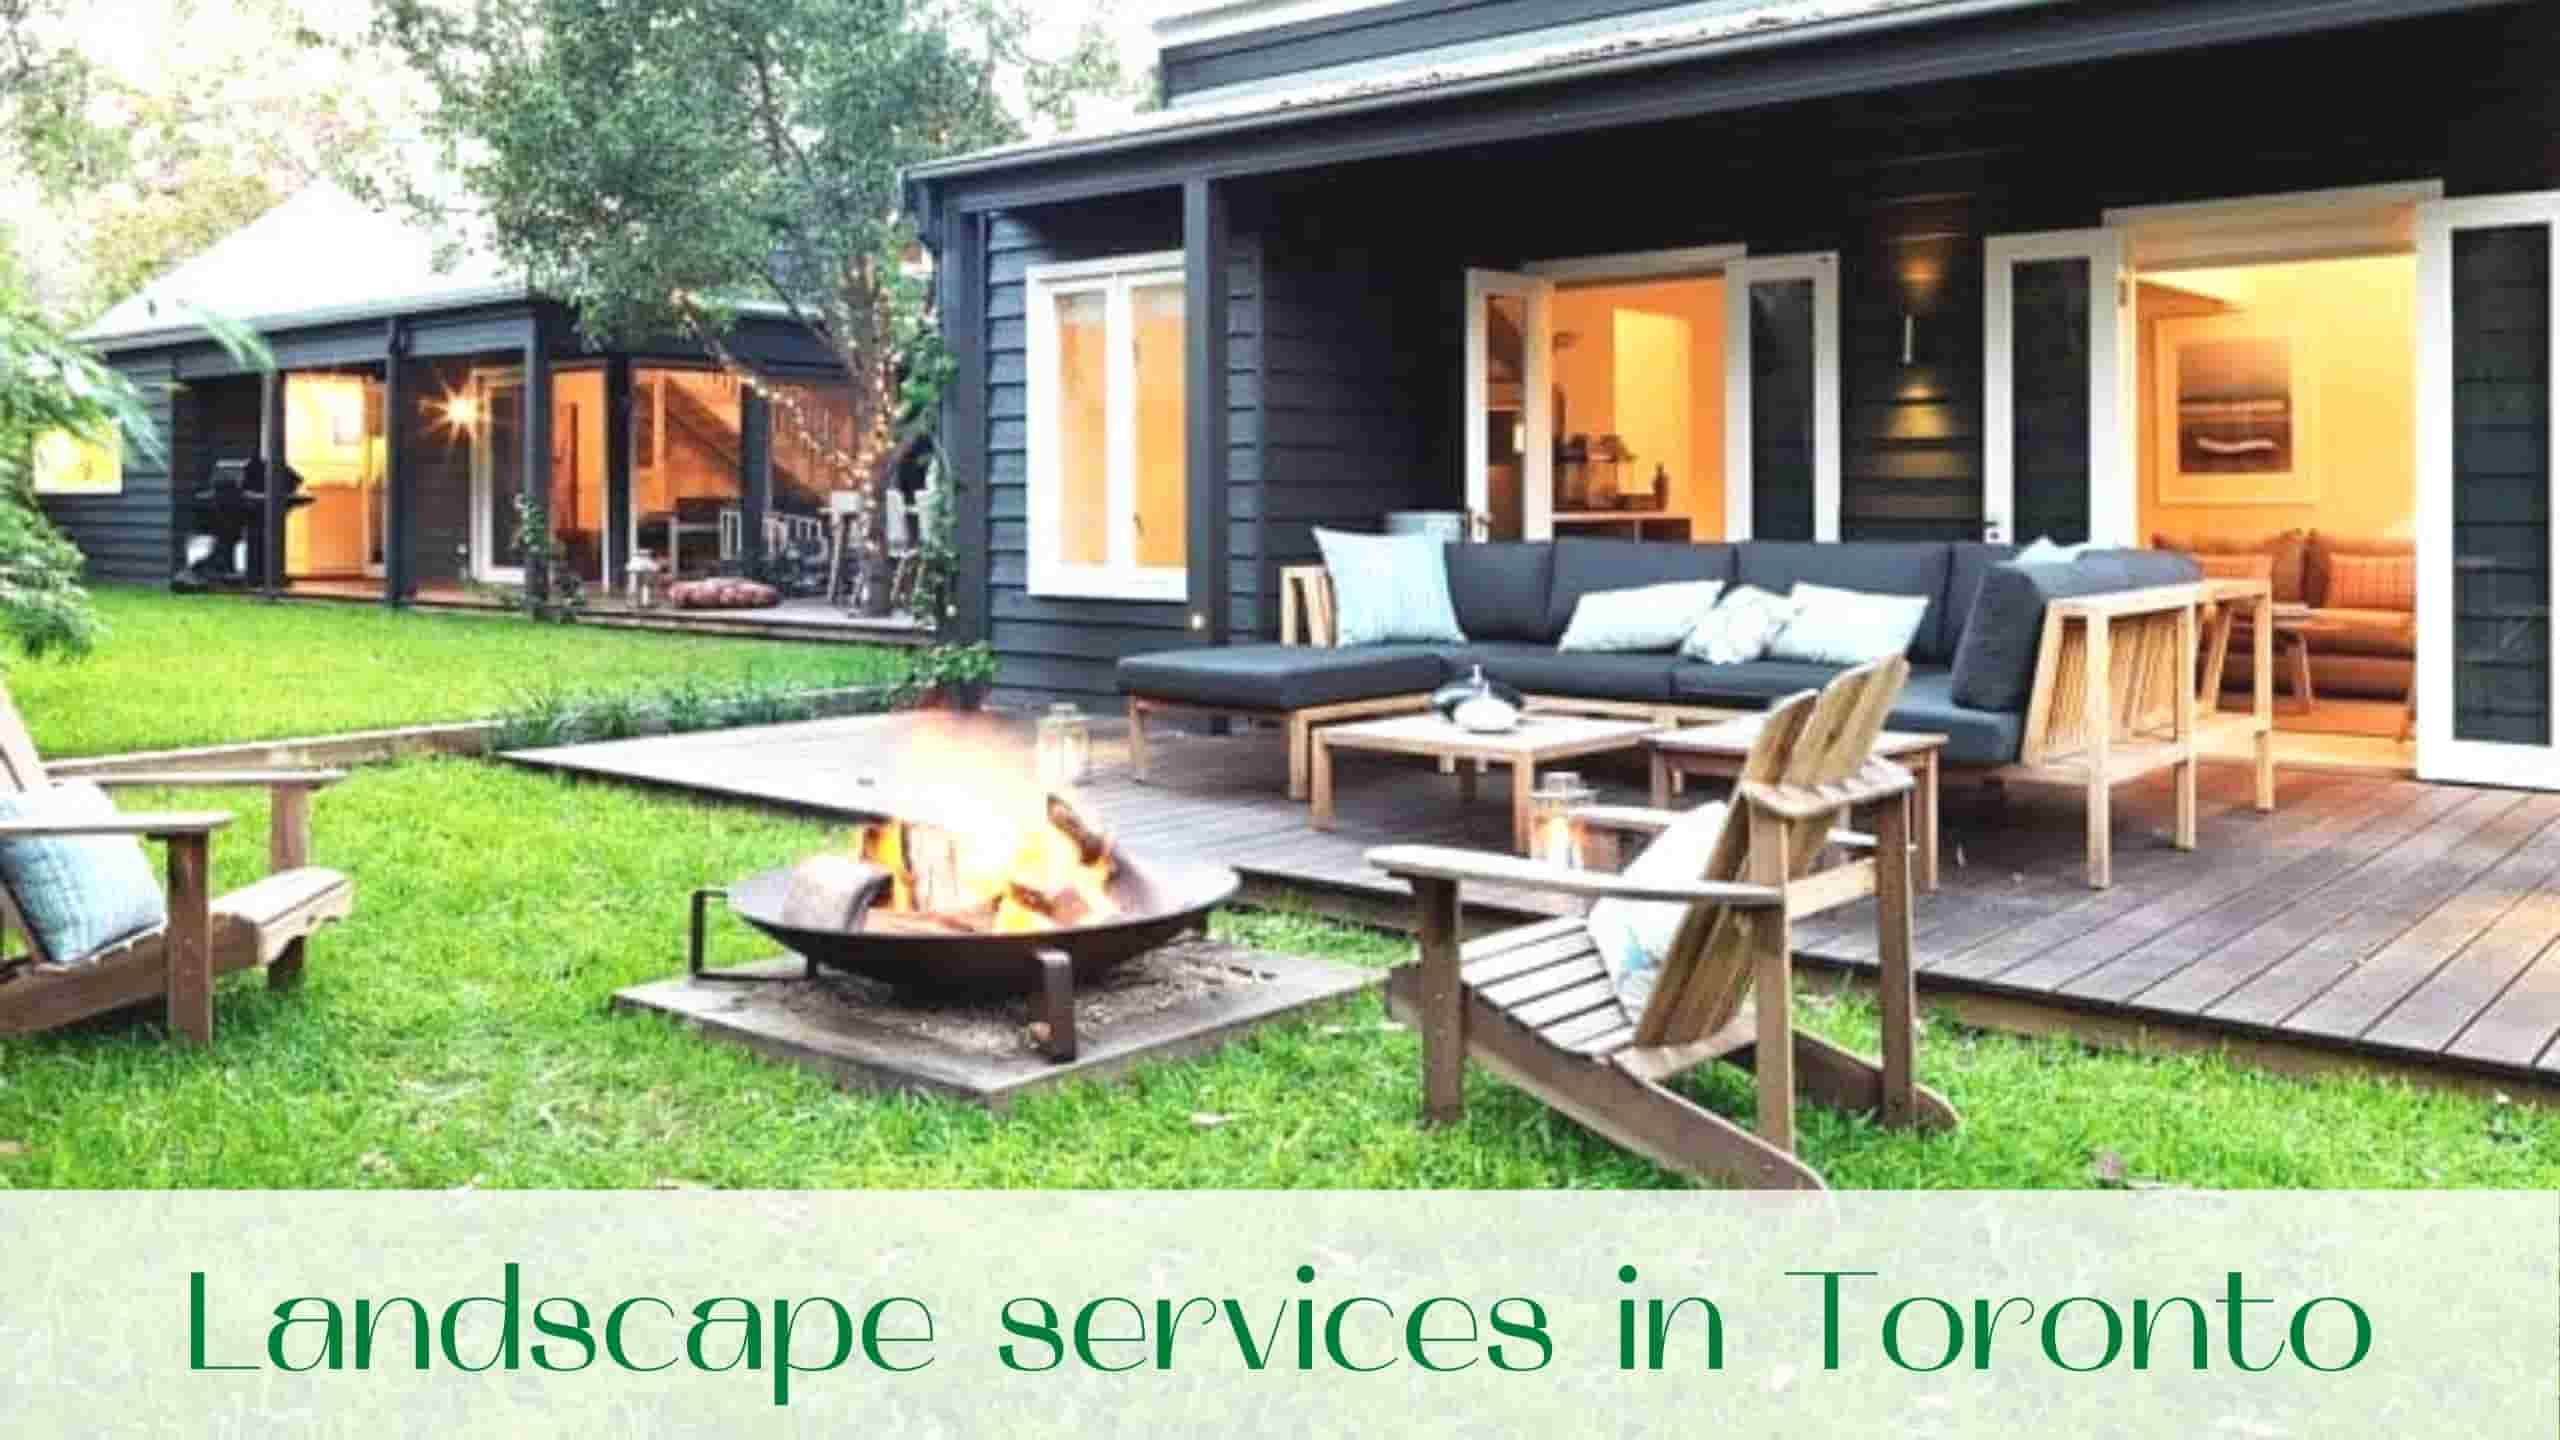 image-landscape-services-in-toronto